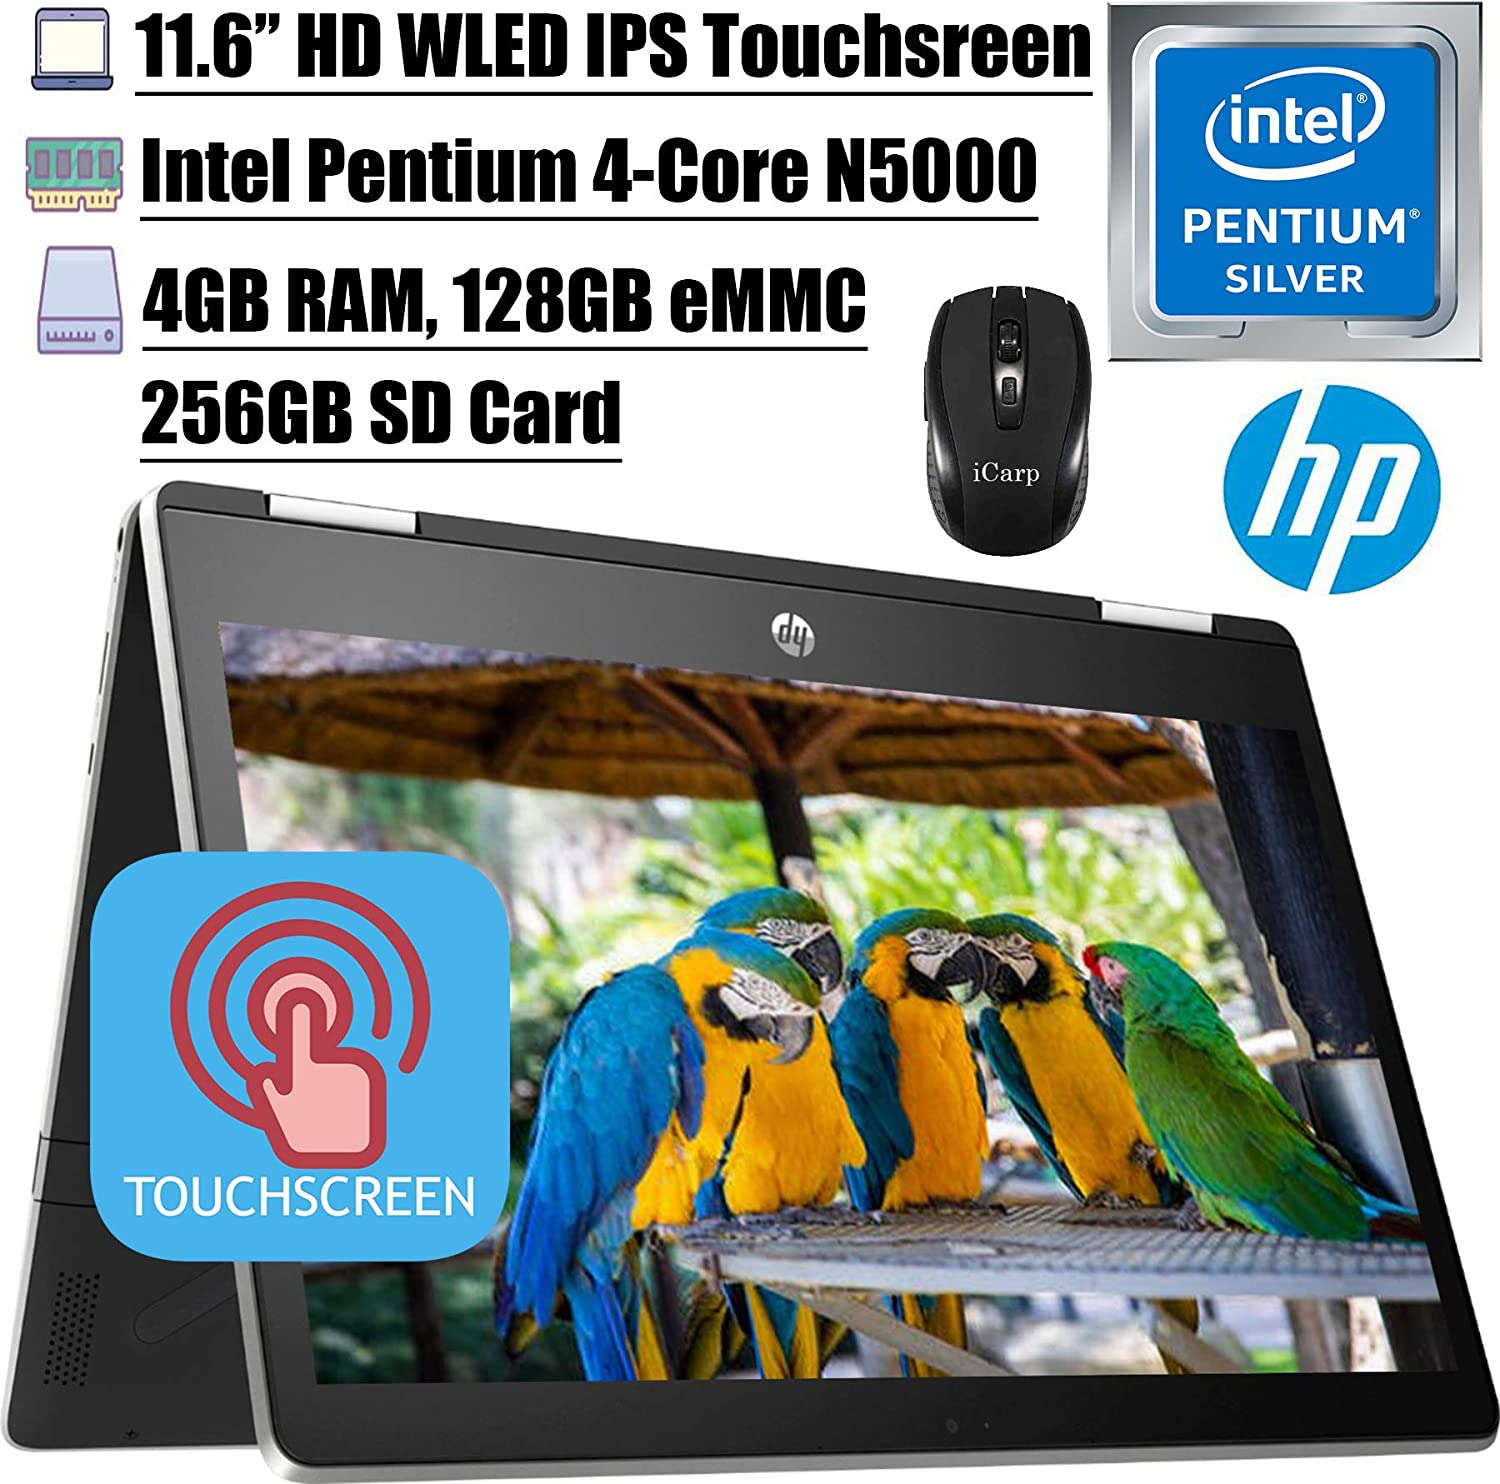 "2020 Latest HP Pavilion X360 11 2 in 1 Laptop 11.6"" HD IPS Touchscreen Intel Quad-Core Pentium Silver N5000 4GB DDR4 128GB eMMC + 256GB SD Card HP Audio Boost WiFi HDMI + iCarp Wireless Mouse"